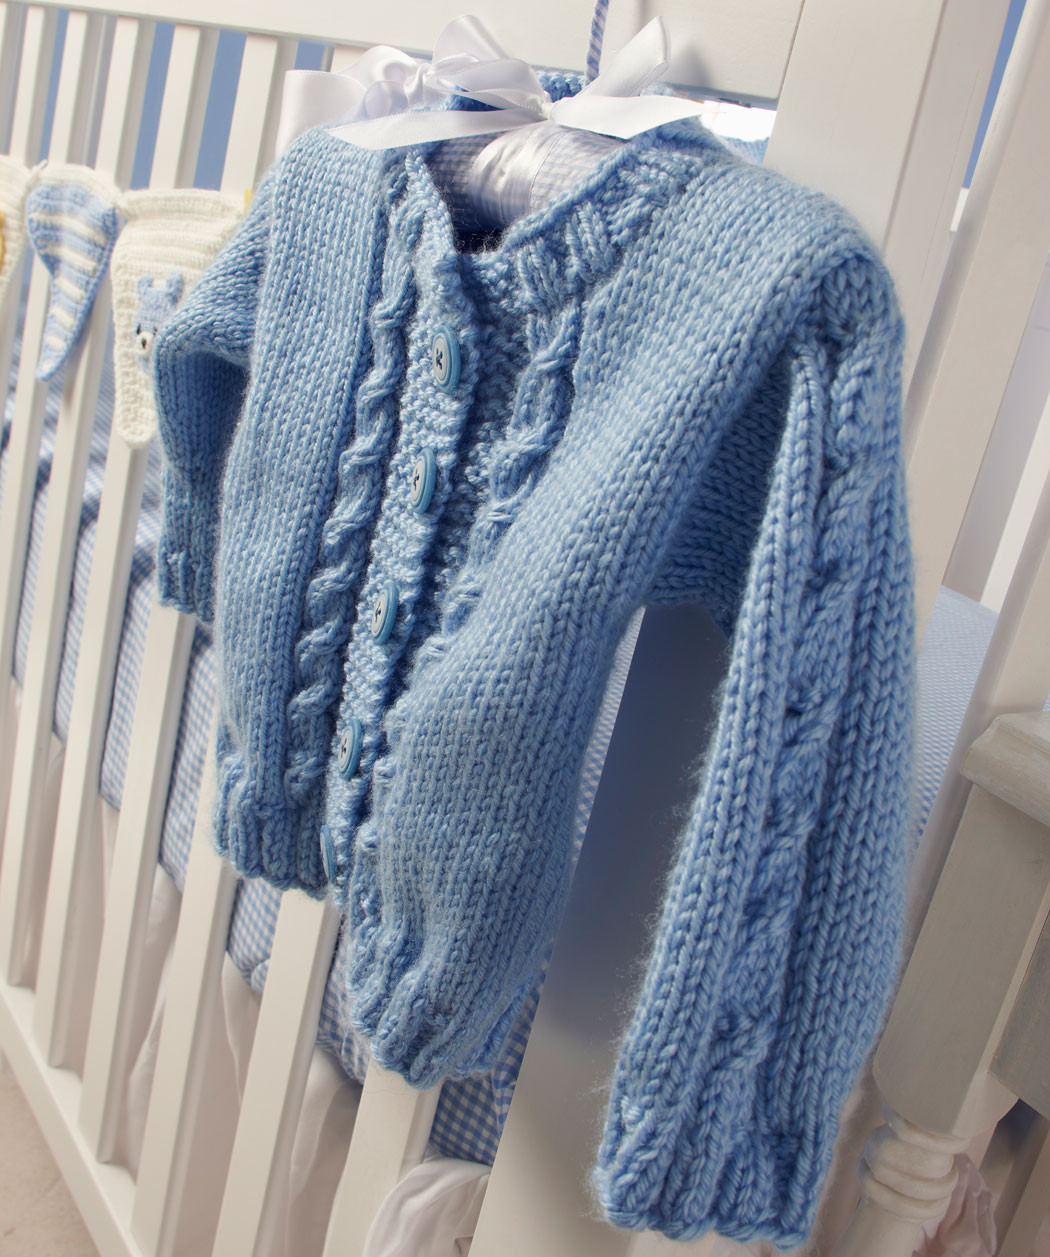 Free Knitting Patterns Awesome Cable Knit Sweater Patterns Of Amazing 46 Ideas Free Knitting Patterns